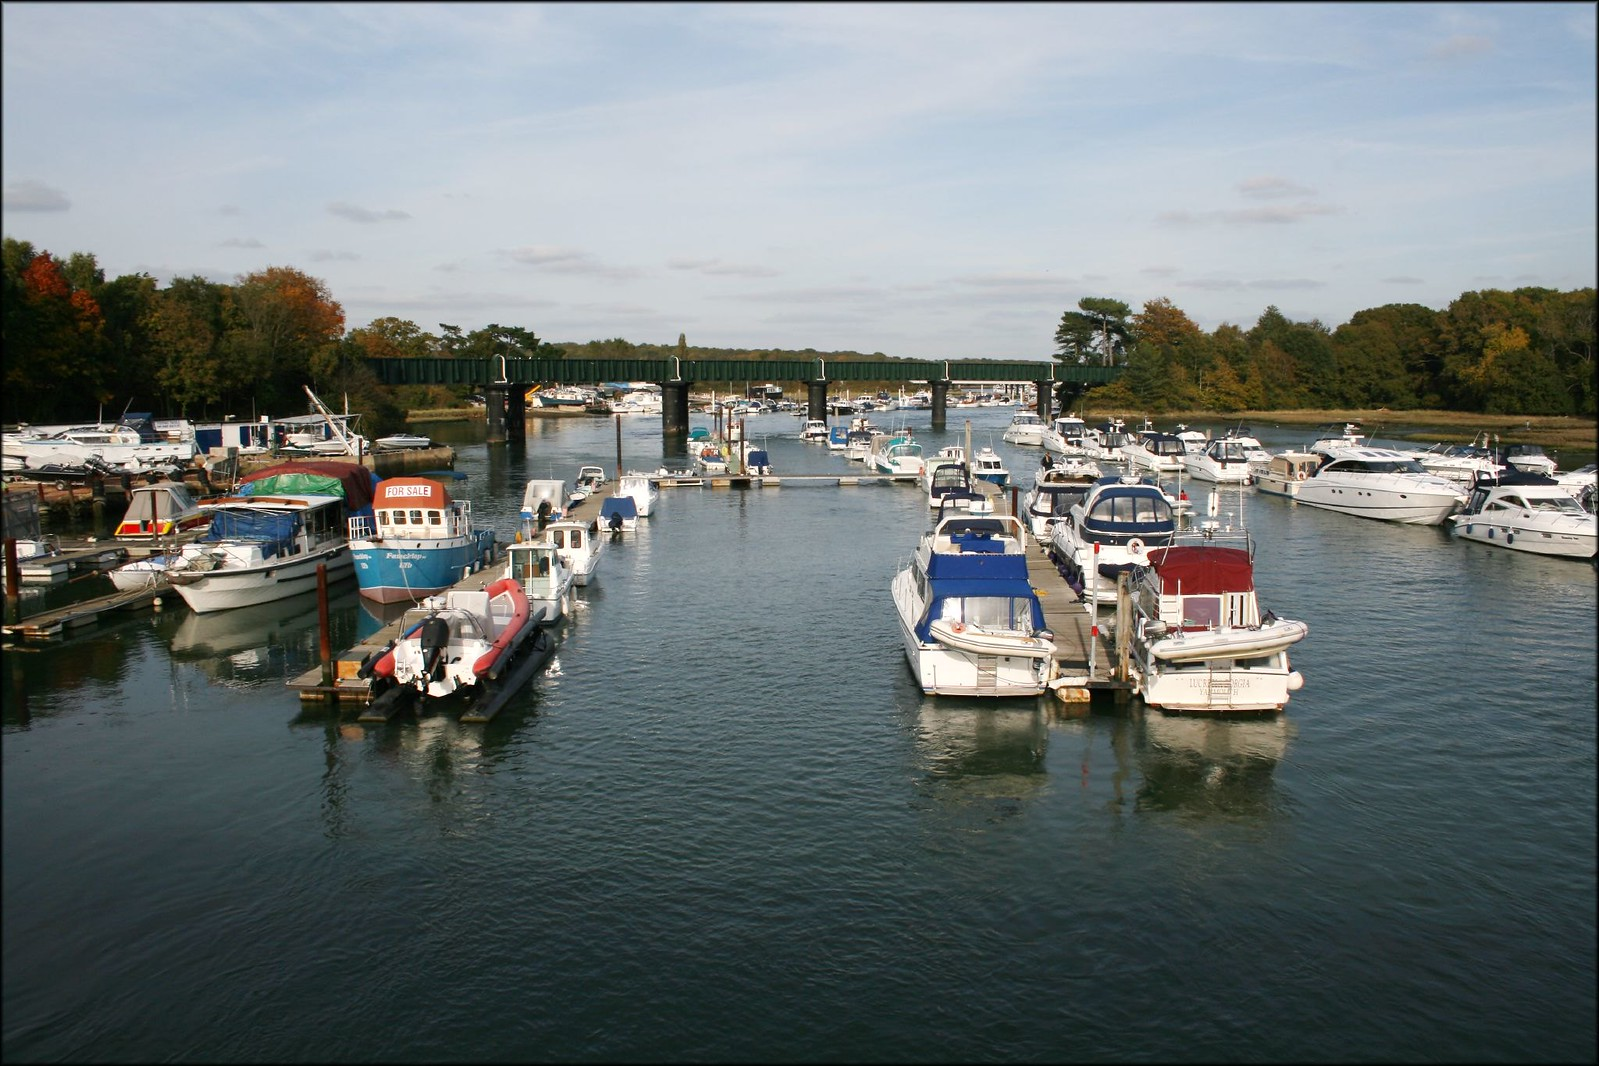 The River Hamble at Bursledon